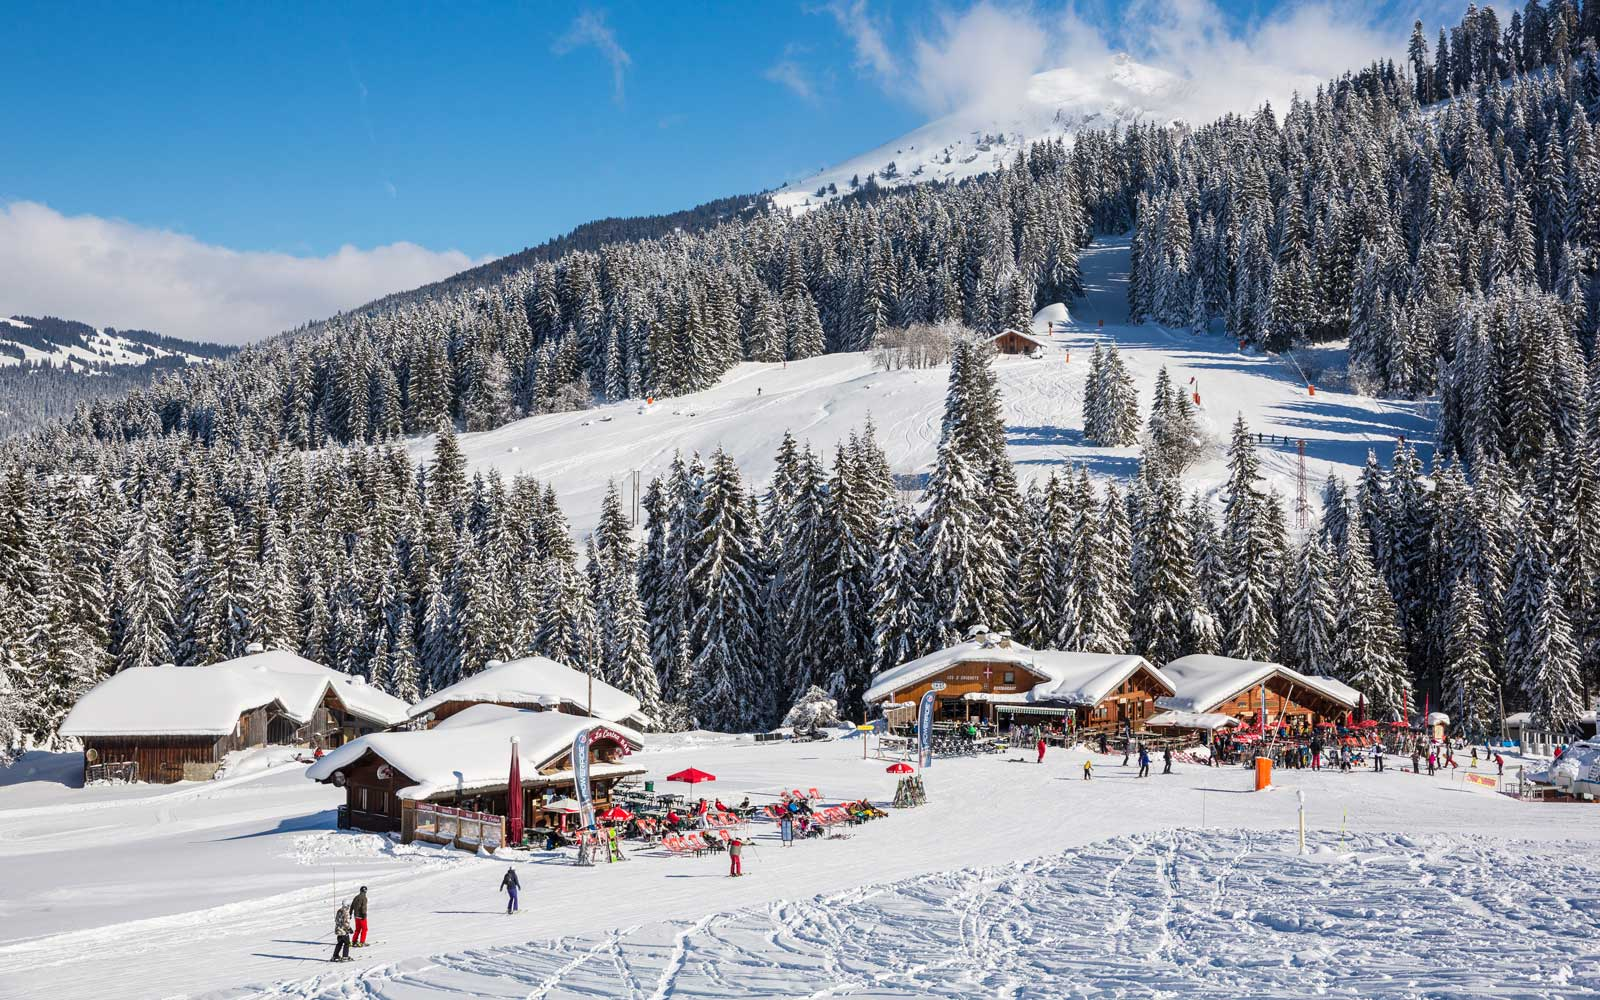 Skiiers in Morzine, France